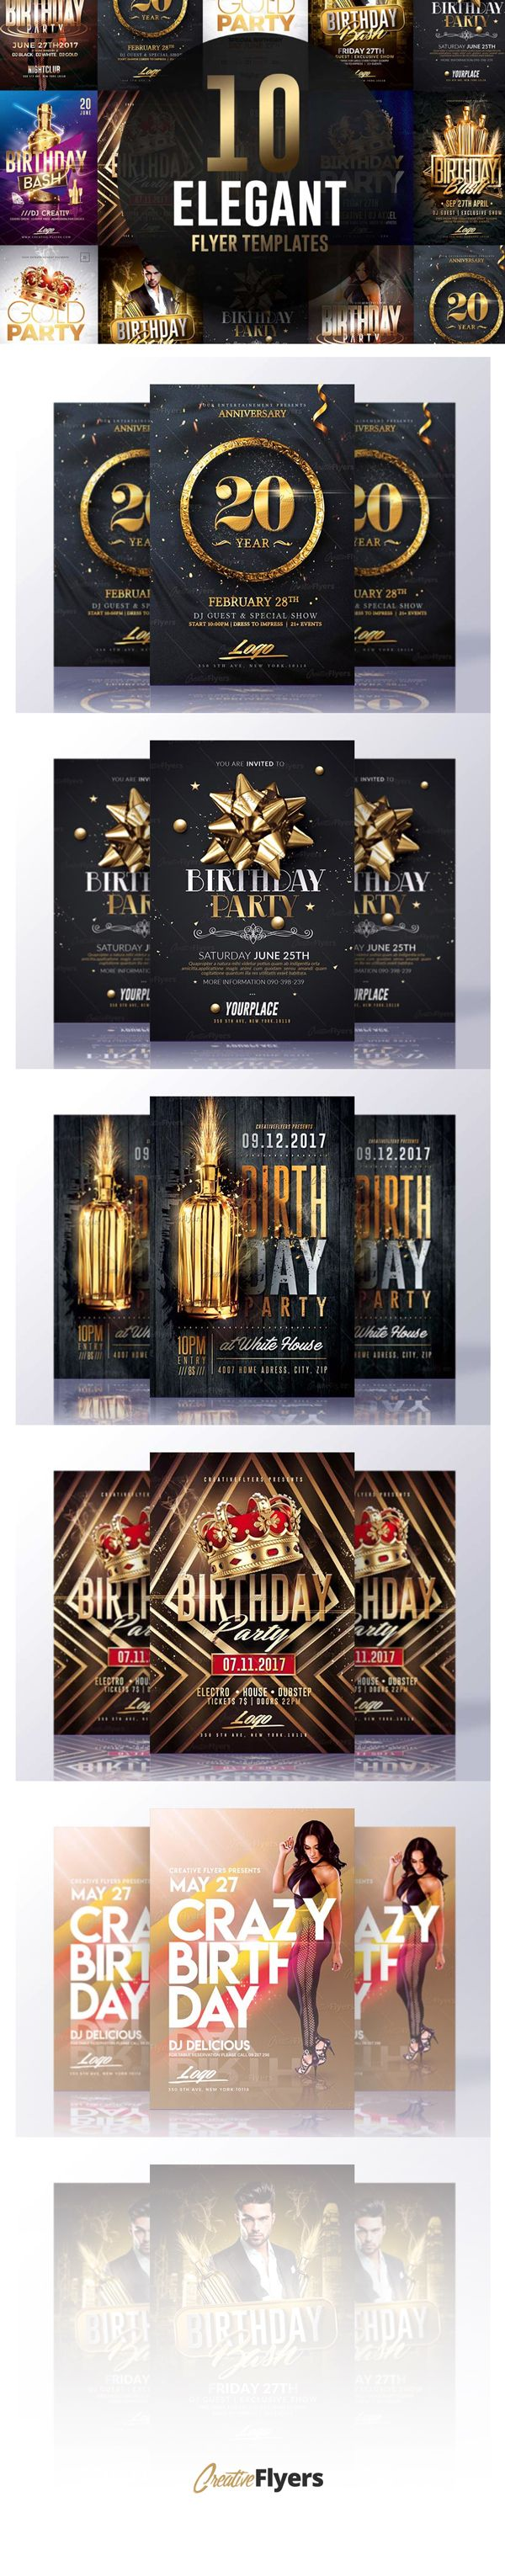 Check Out 10 Elegant Flyer Templates Flyer Template Psd Templates